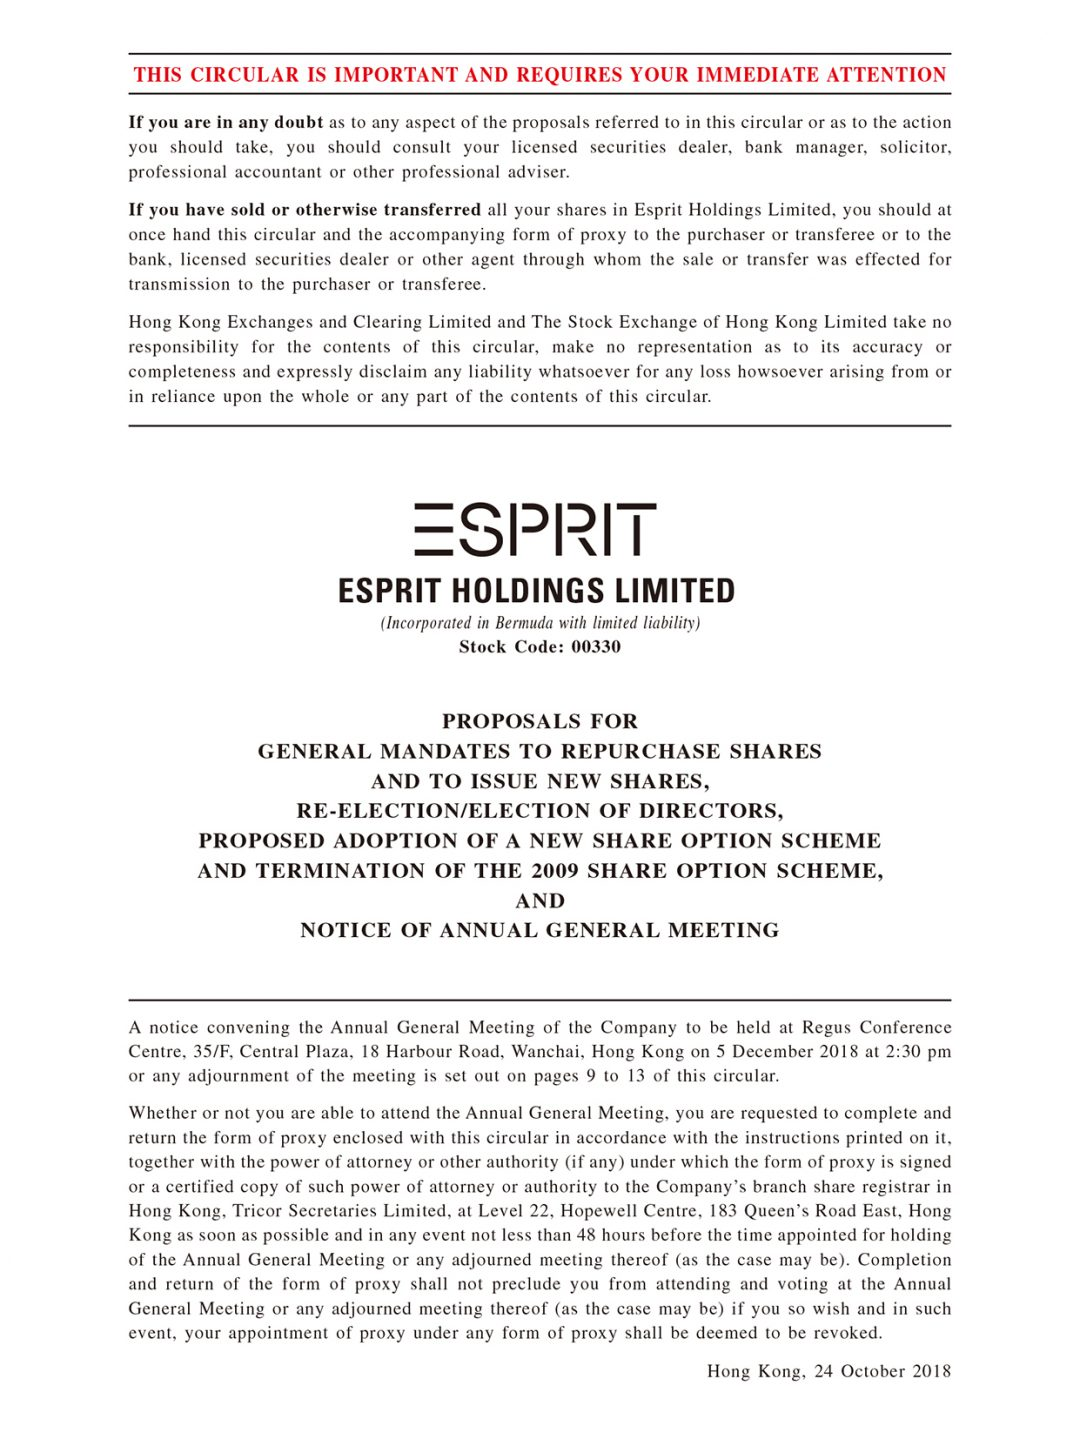 ESPRIT Holdings Limited